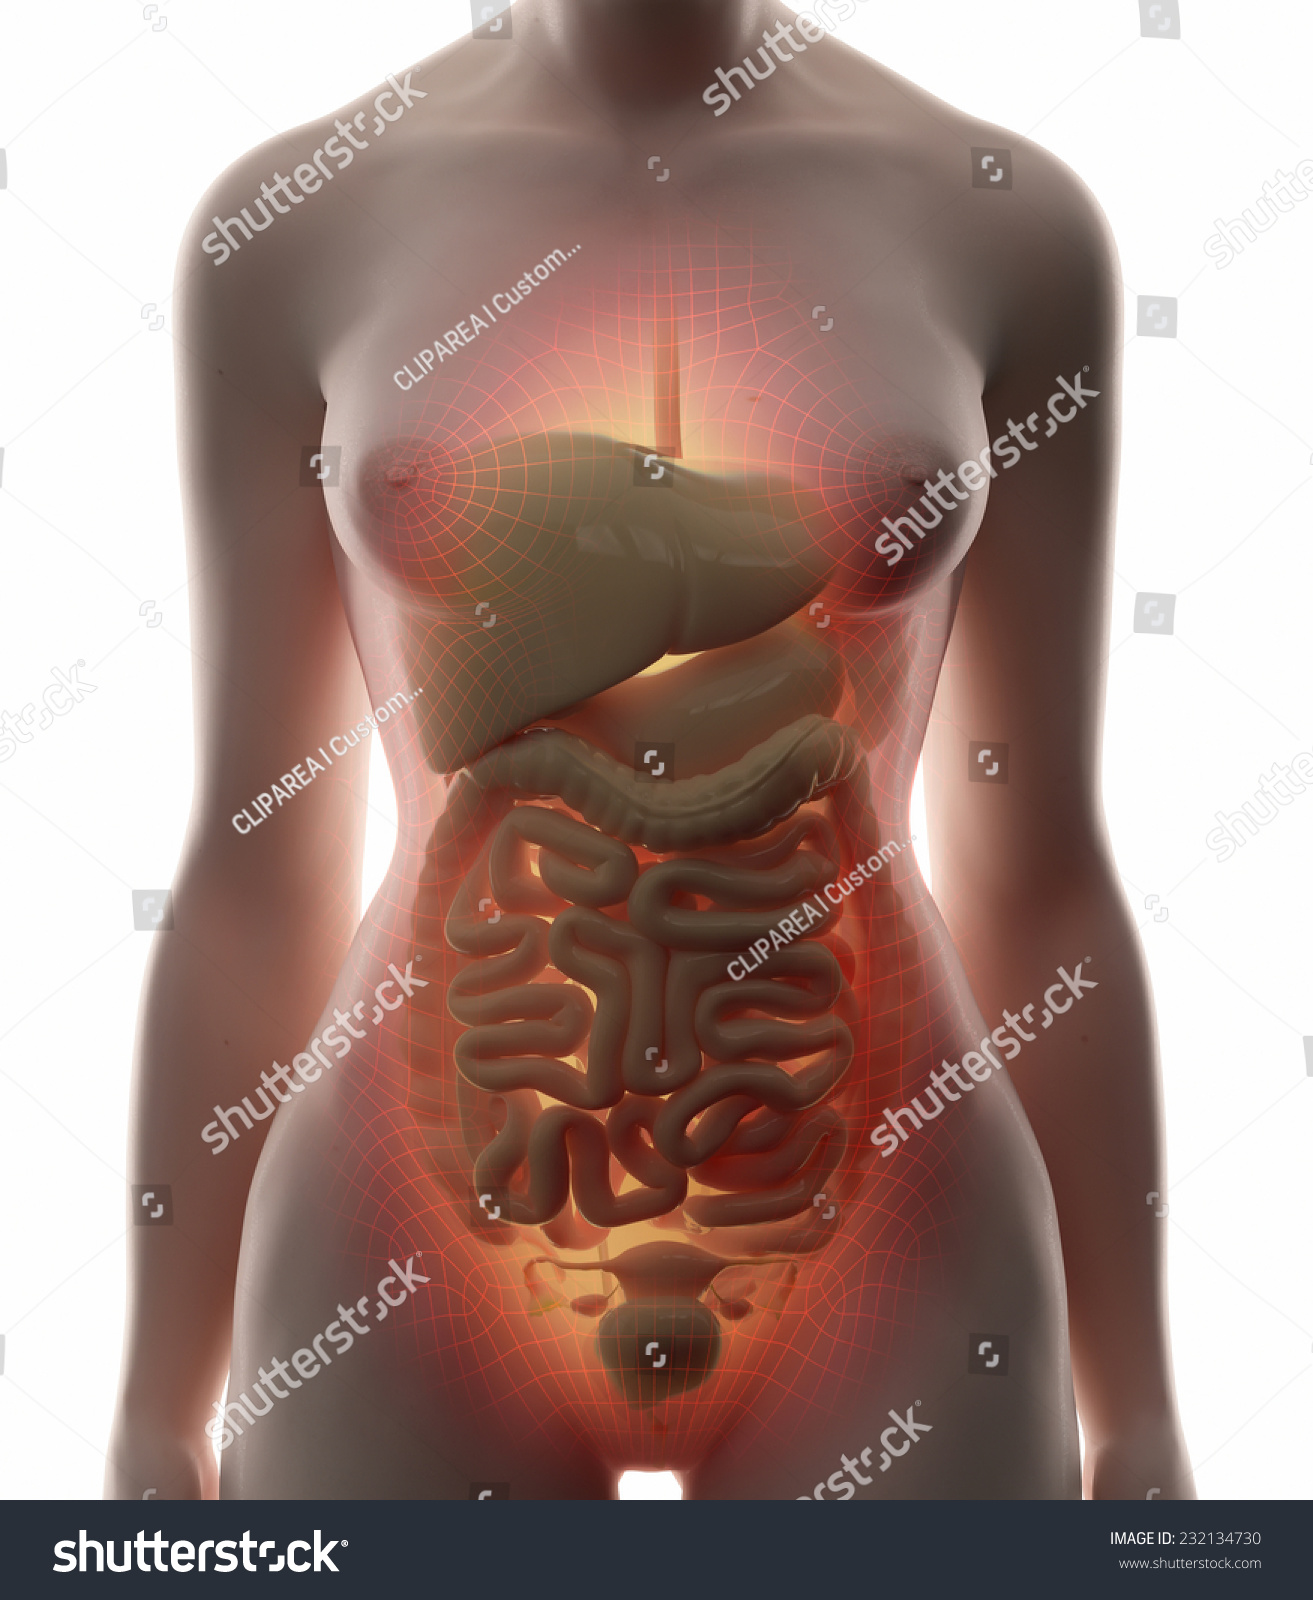 Royalty Free Stock Illustration Of Abdominal Organs Real View Female